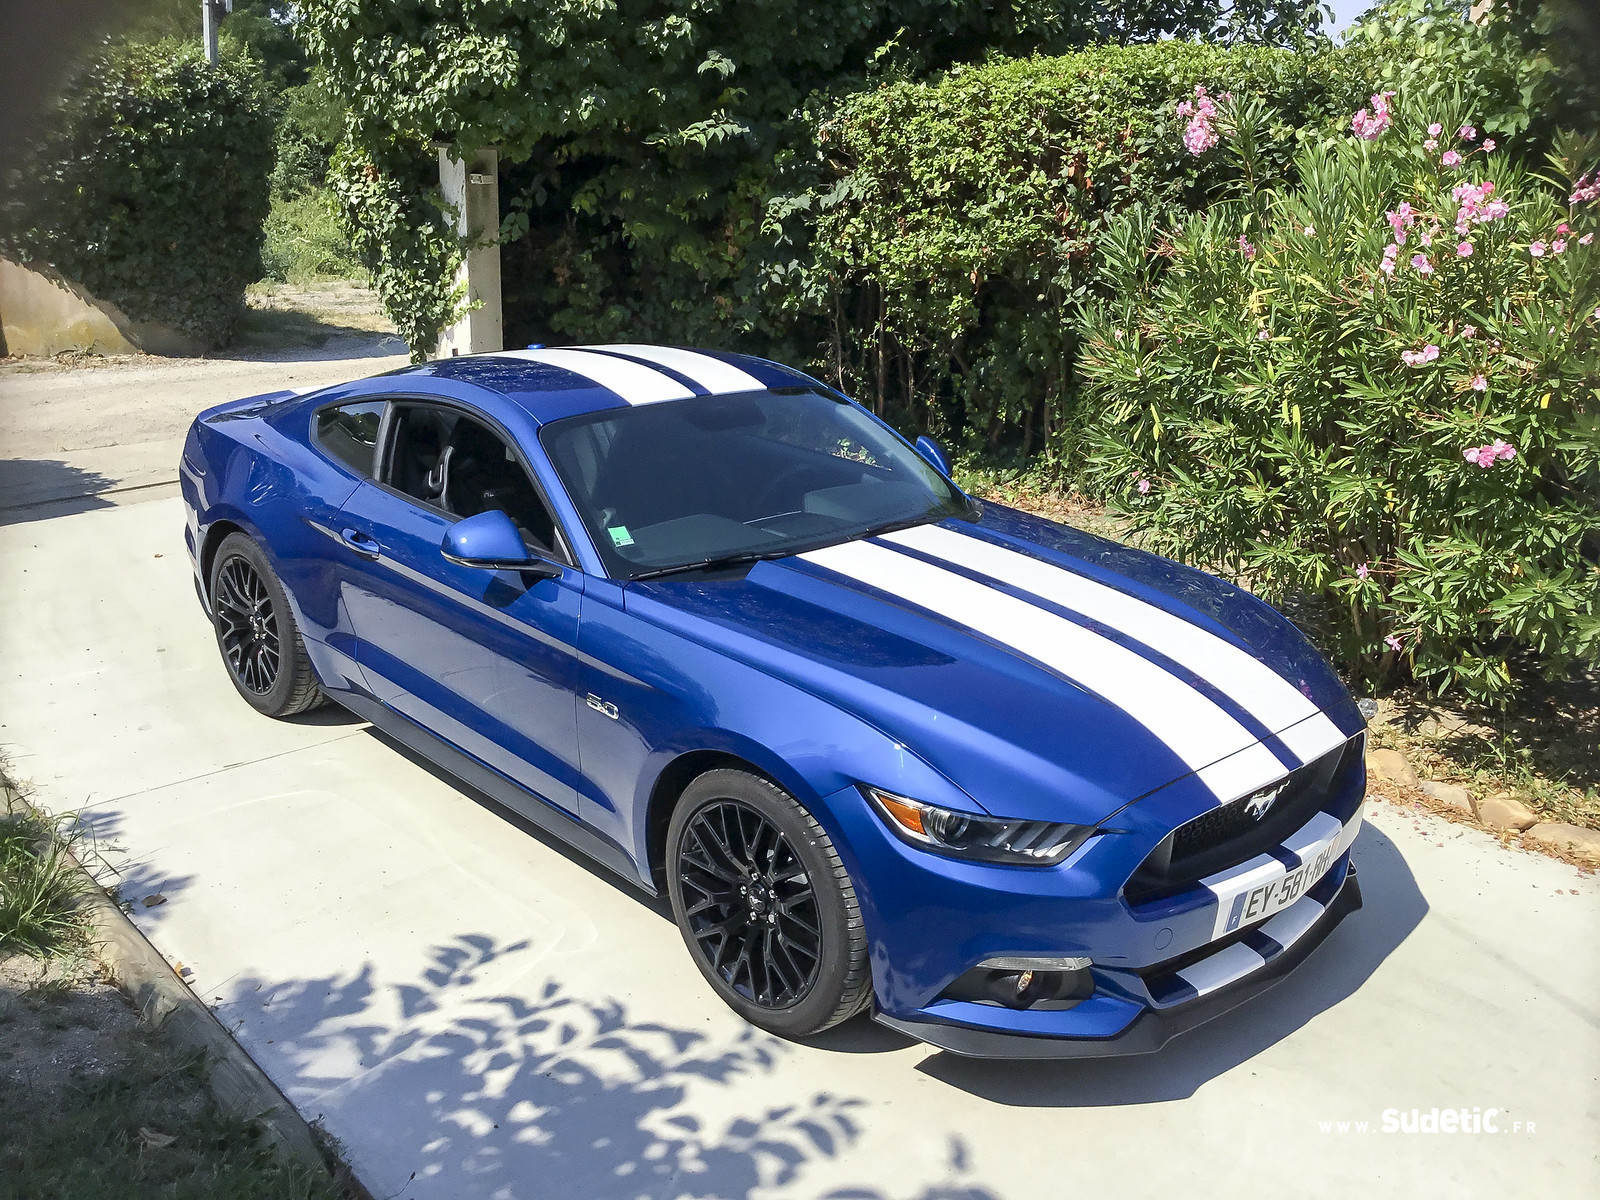 Sudetic bandes blanches Ford Mustang-2